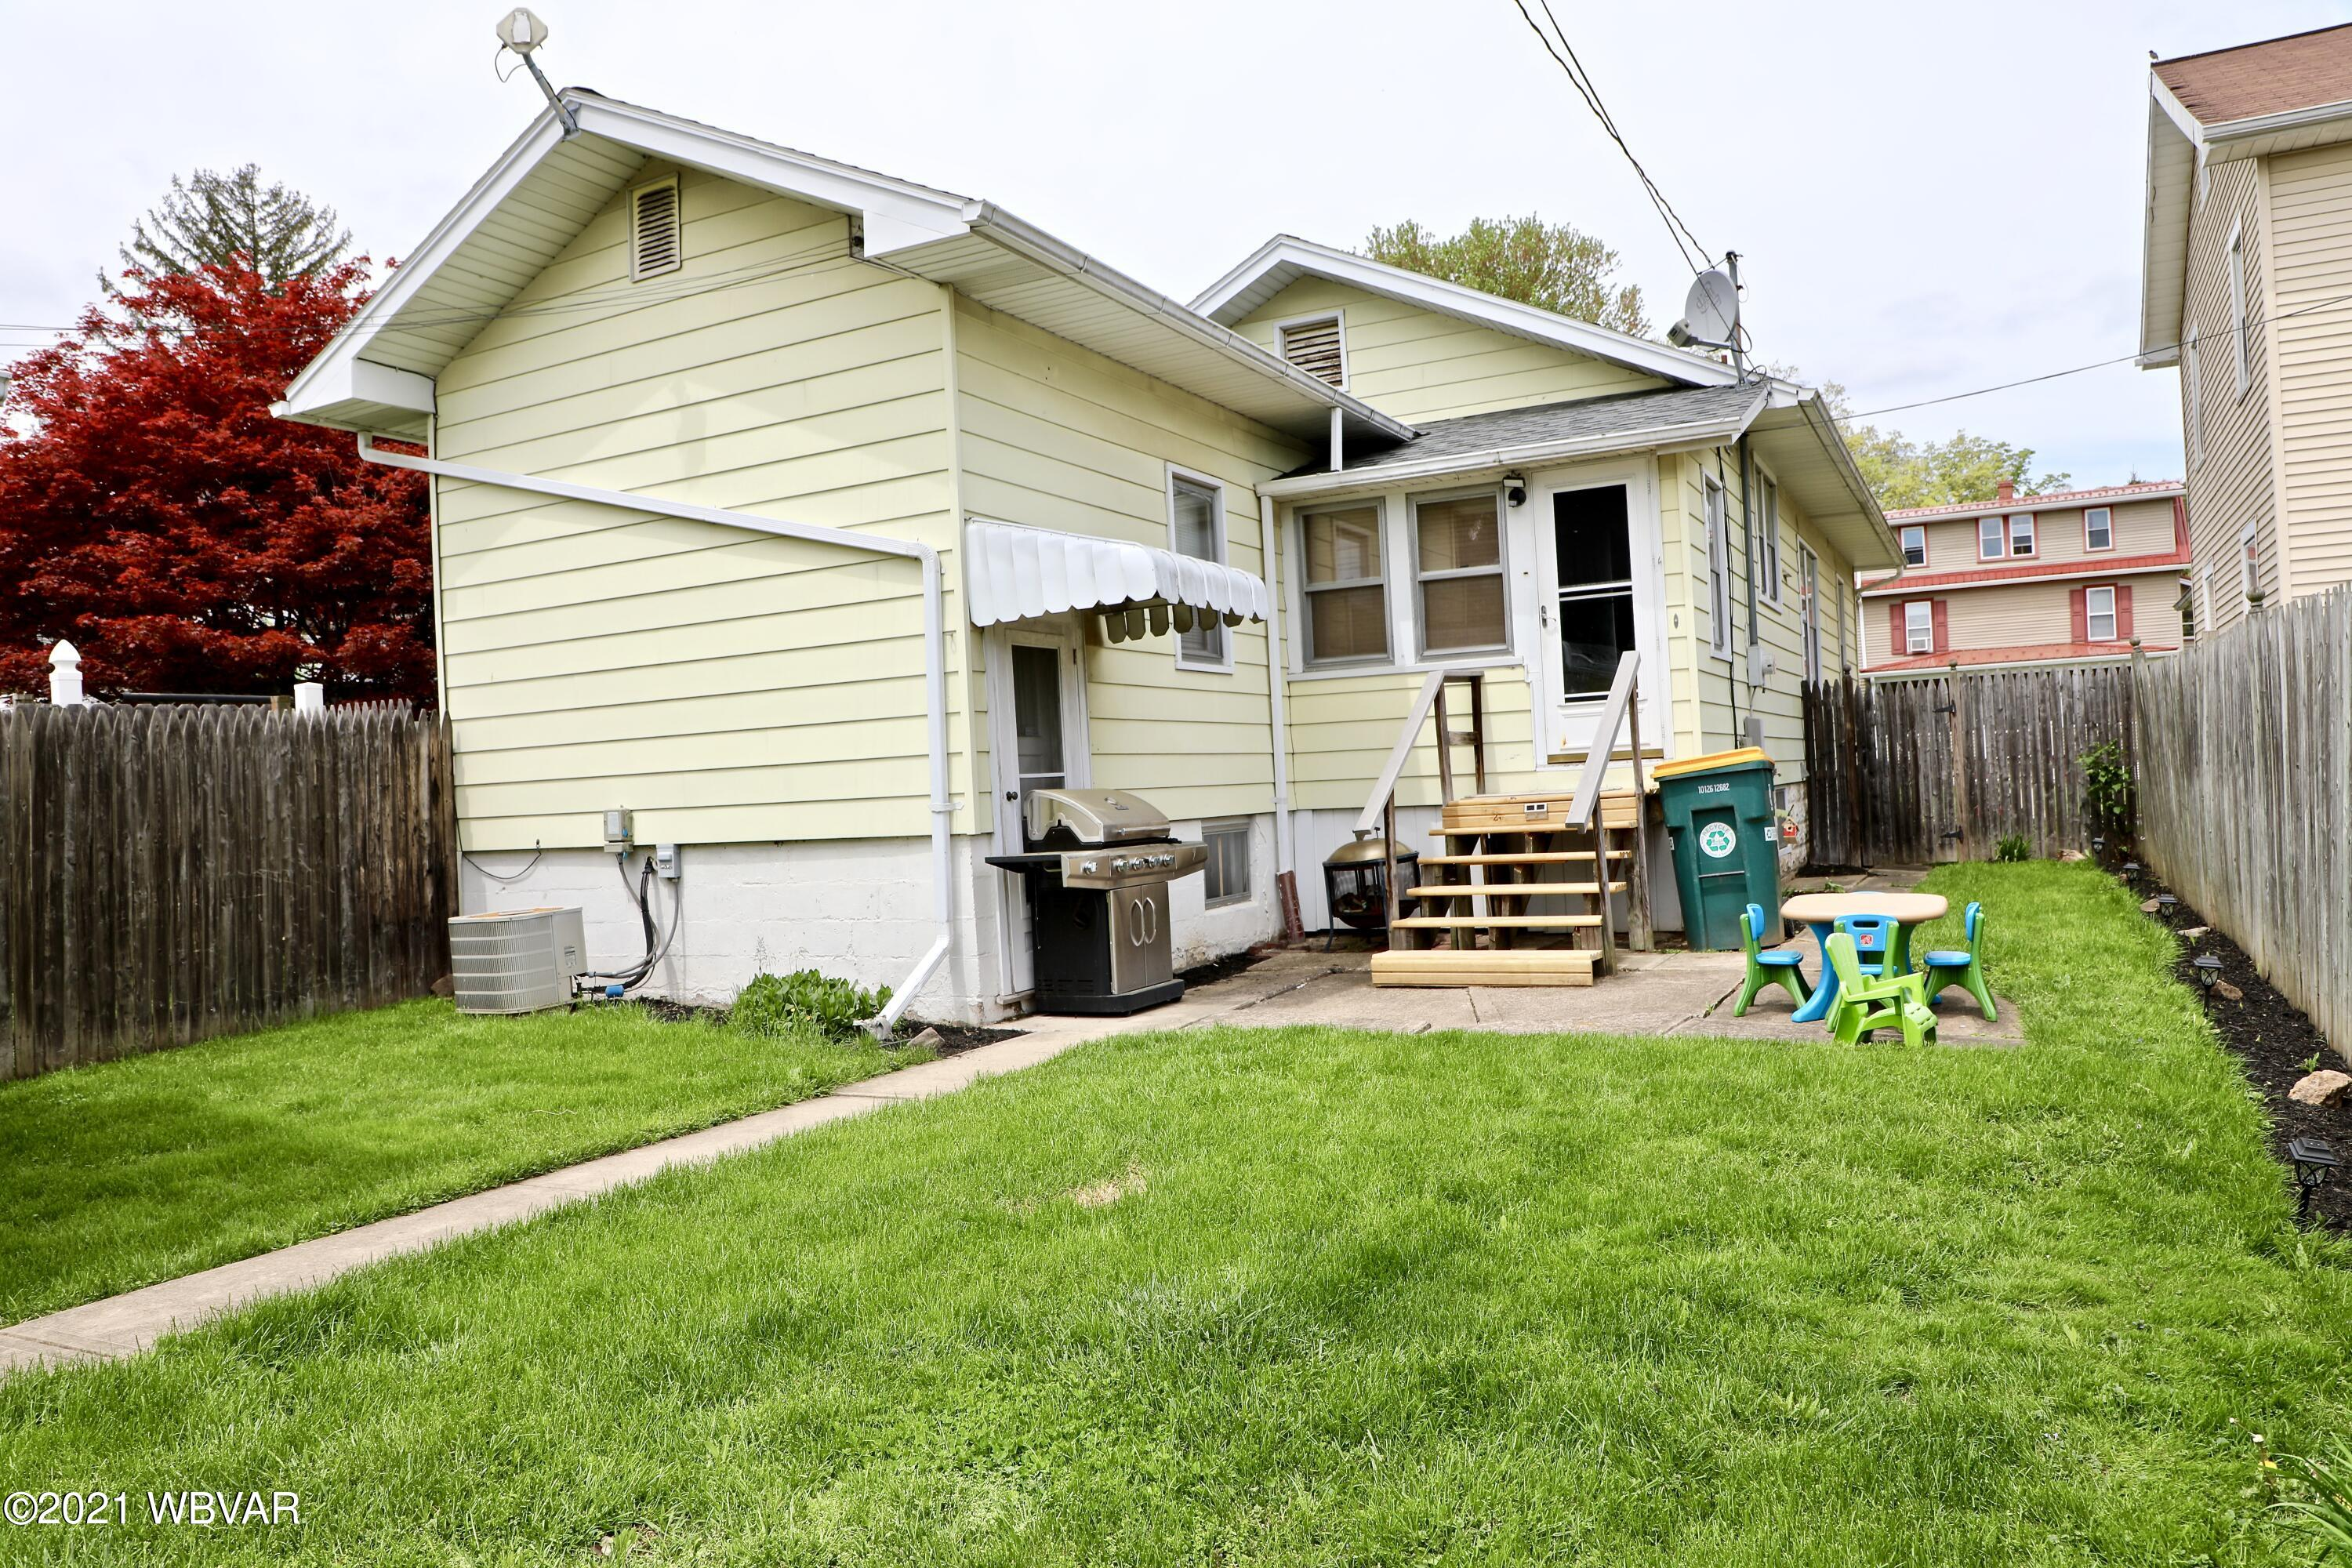 218 JEROME AVENUE, Williamsport, PA 17701, 3 Bedrooms Bedrooms, ,2 BathroomsBathrooms,Residential,For sale,JEROME,WB-92469